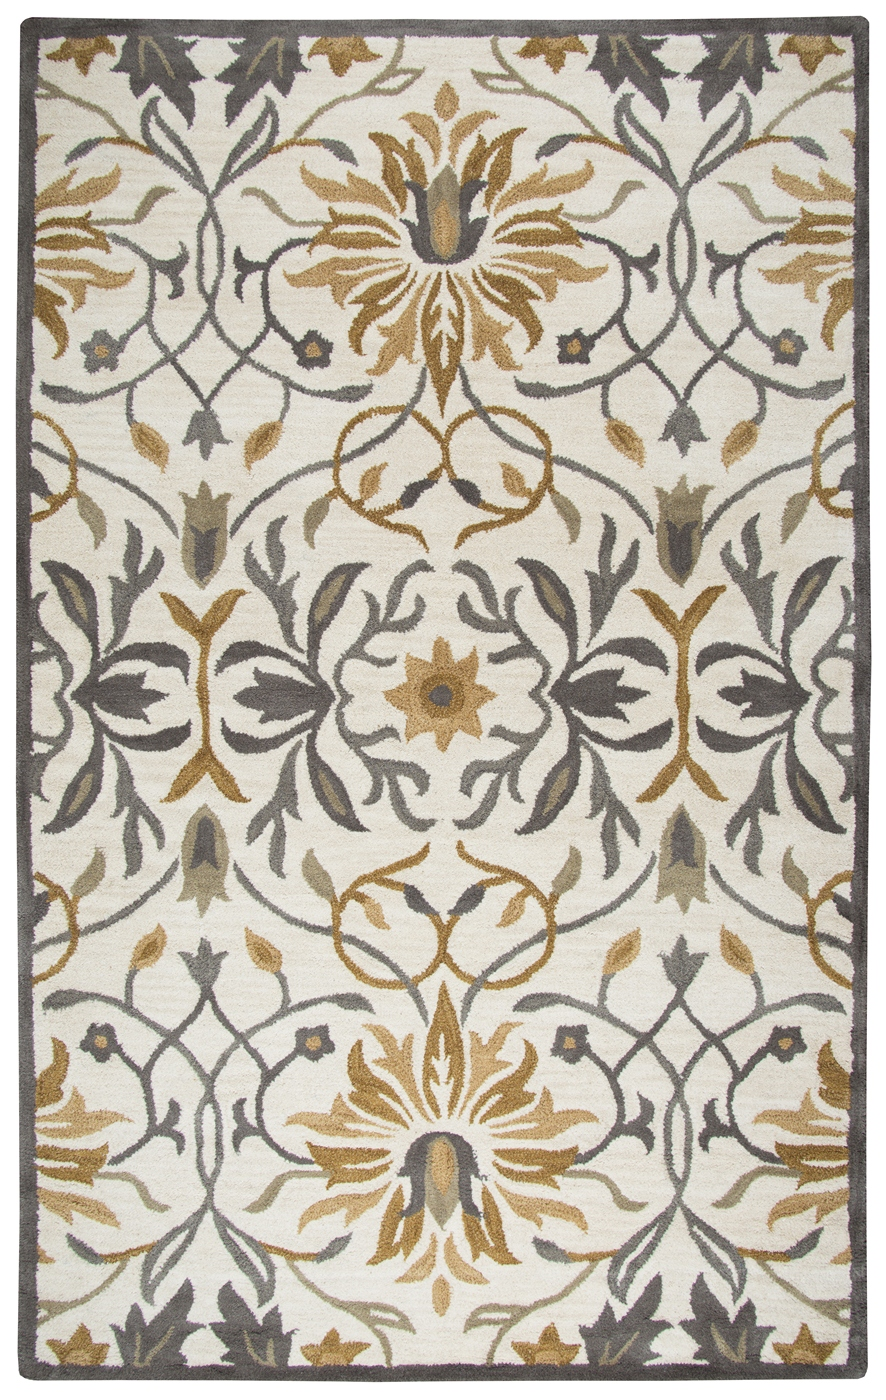 Valintino Floral Ornamental Wool Area Rug In Gray Amp Yellow